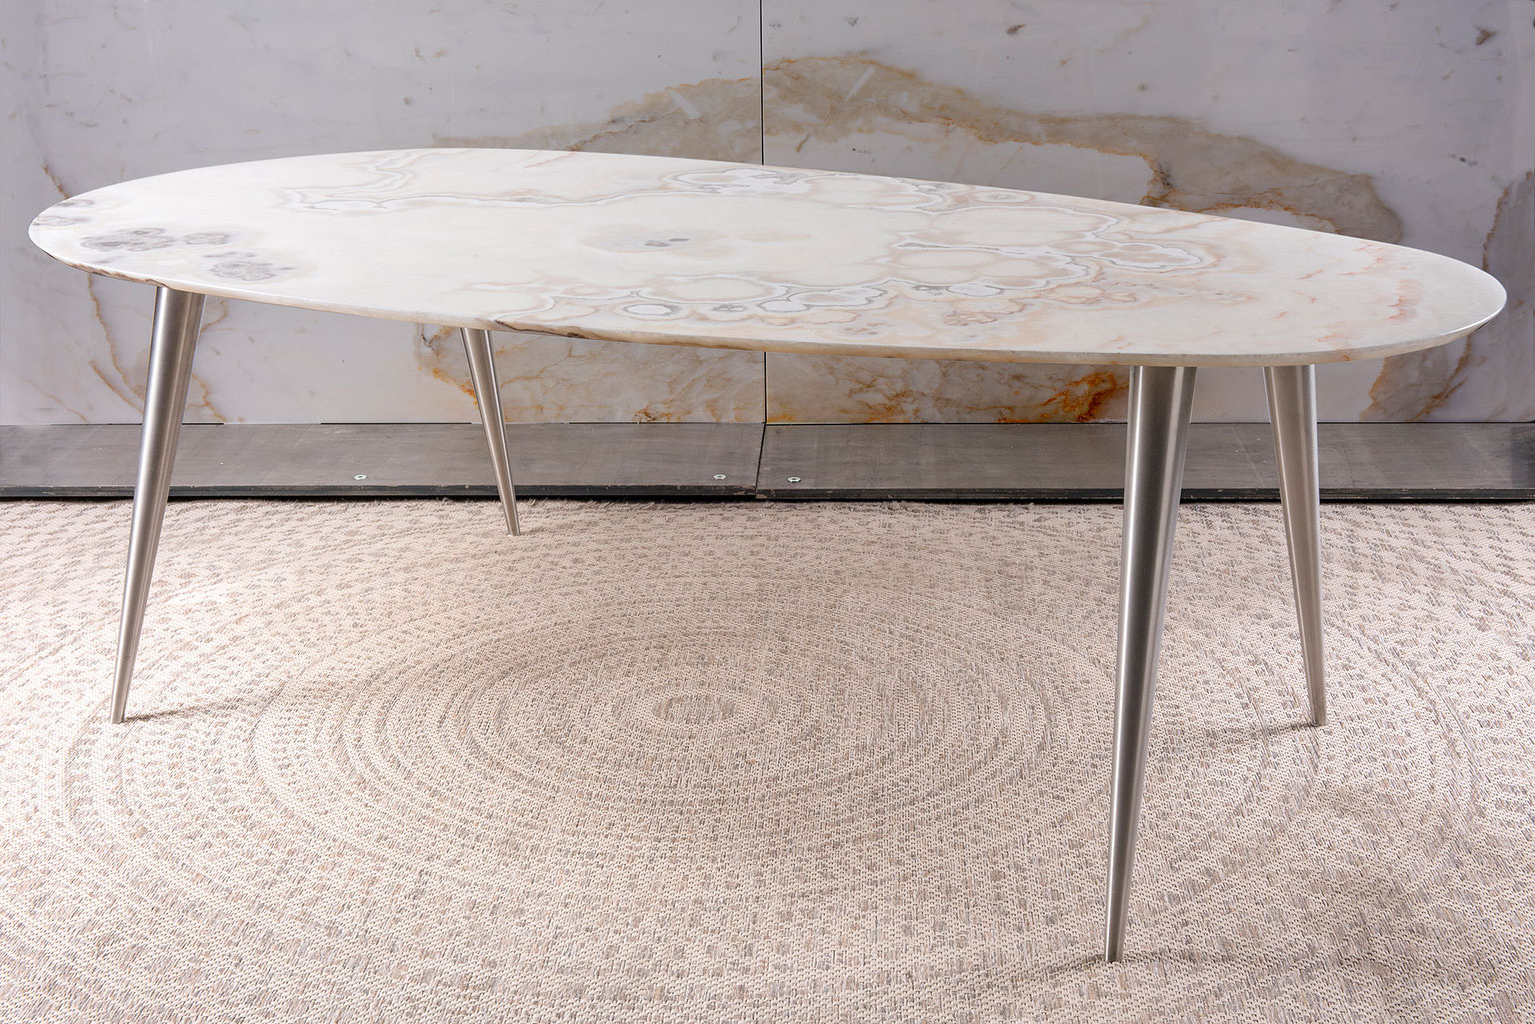 Dining Tables With Brushed Gold Stainless Finish for Fashionable Pure Natural Design - Dining Table, Center Table & Side